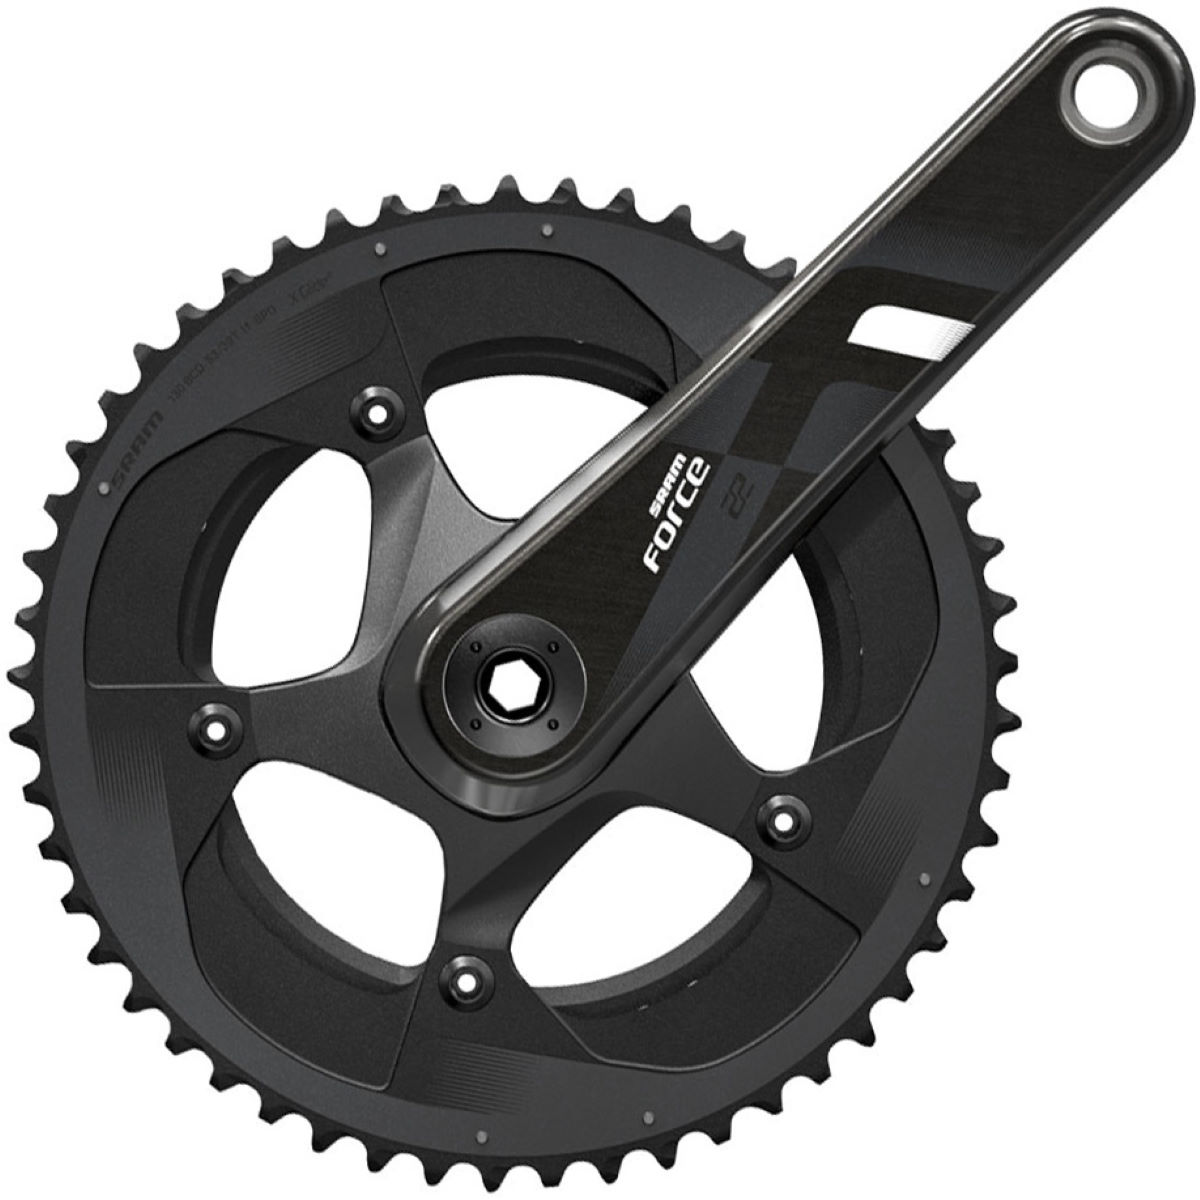 SRAM SRAM Force 22 GXP Compact Chainset   Chainsets